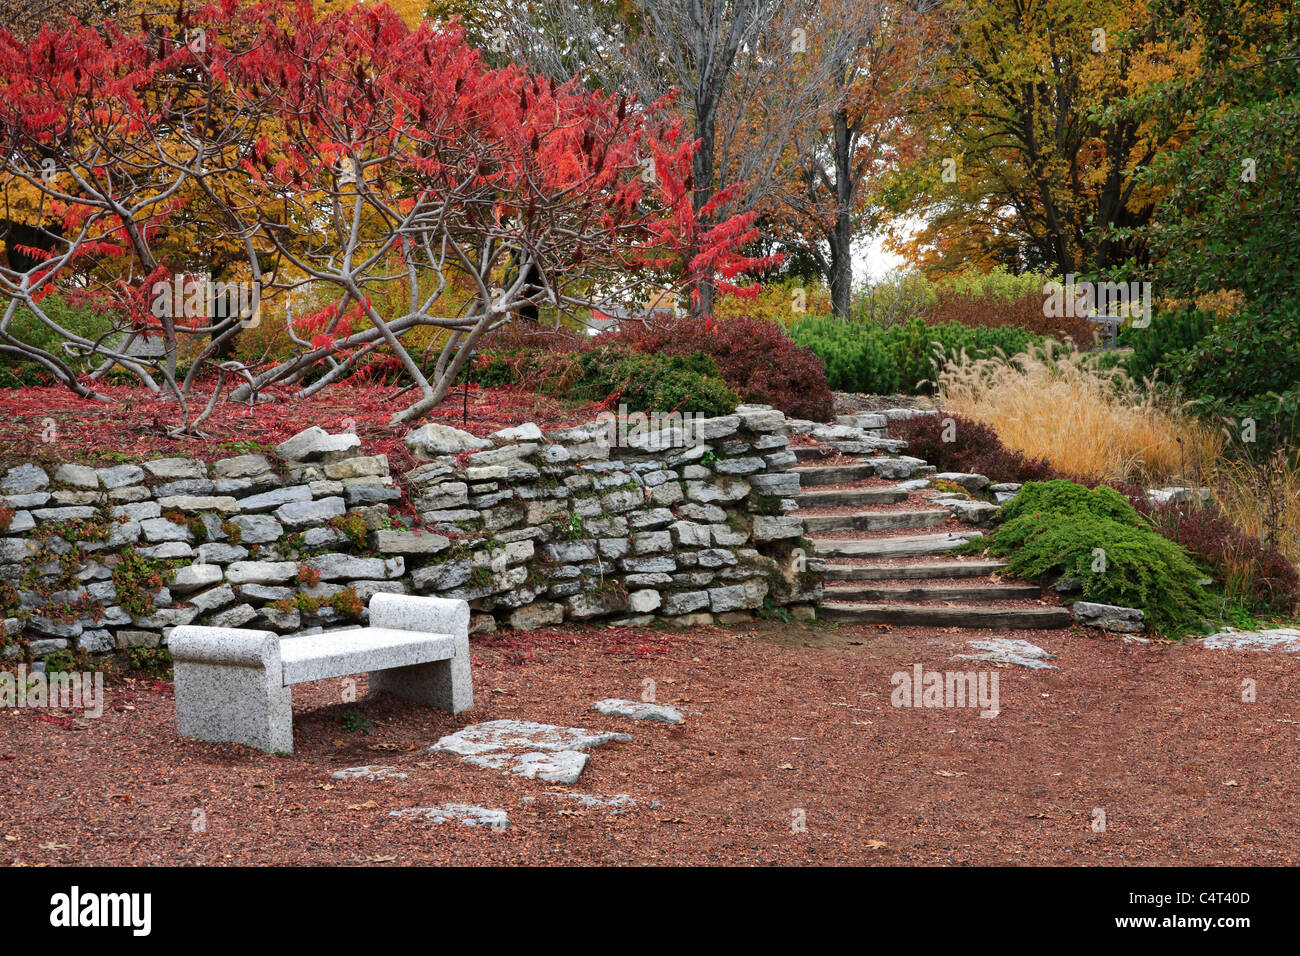 Ohio Garden Stock Photos & Ohio Garden Stock Images - Alamy